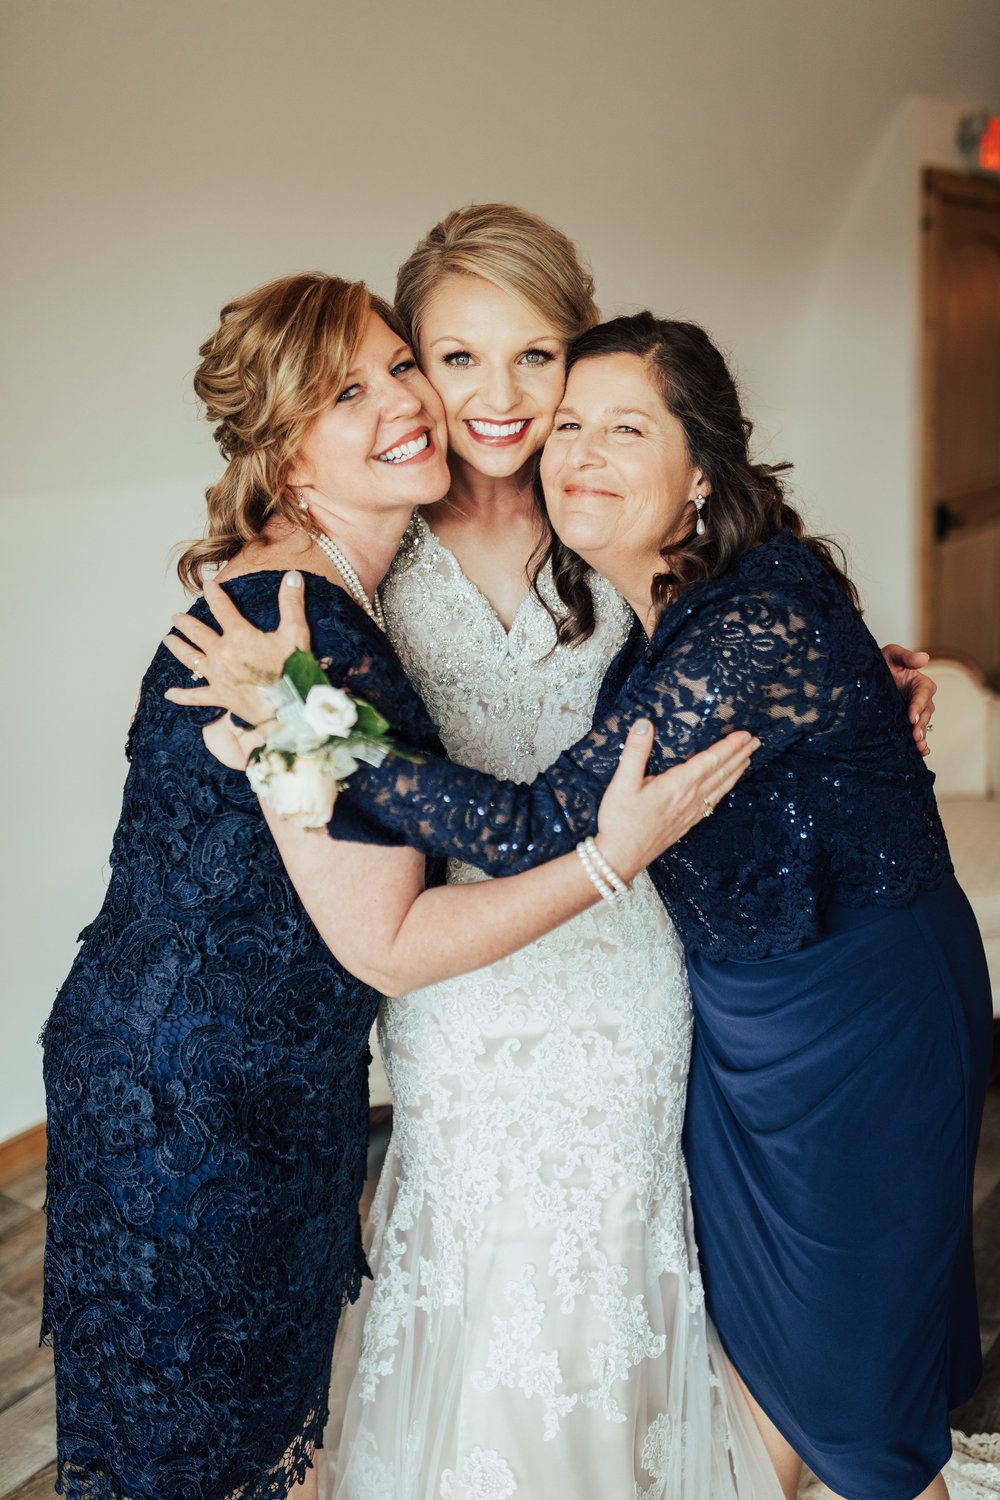 Janelle Elise | Megan + Corey | Furber Farm | Sixpence Events | A Vintage Touch Weddings | moms hug | mother of the bride and mother of the groom in navy lace dresses and hair half up and half down